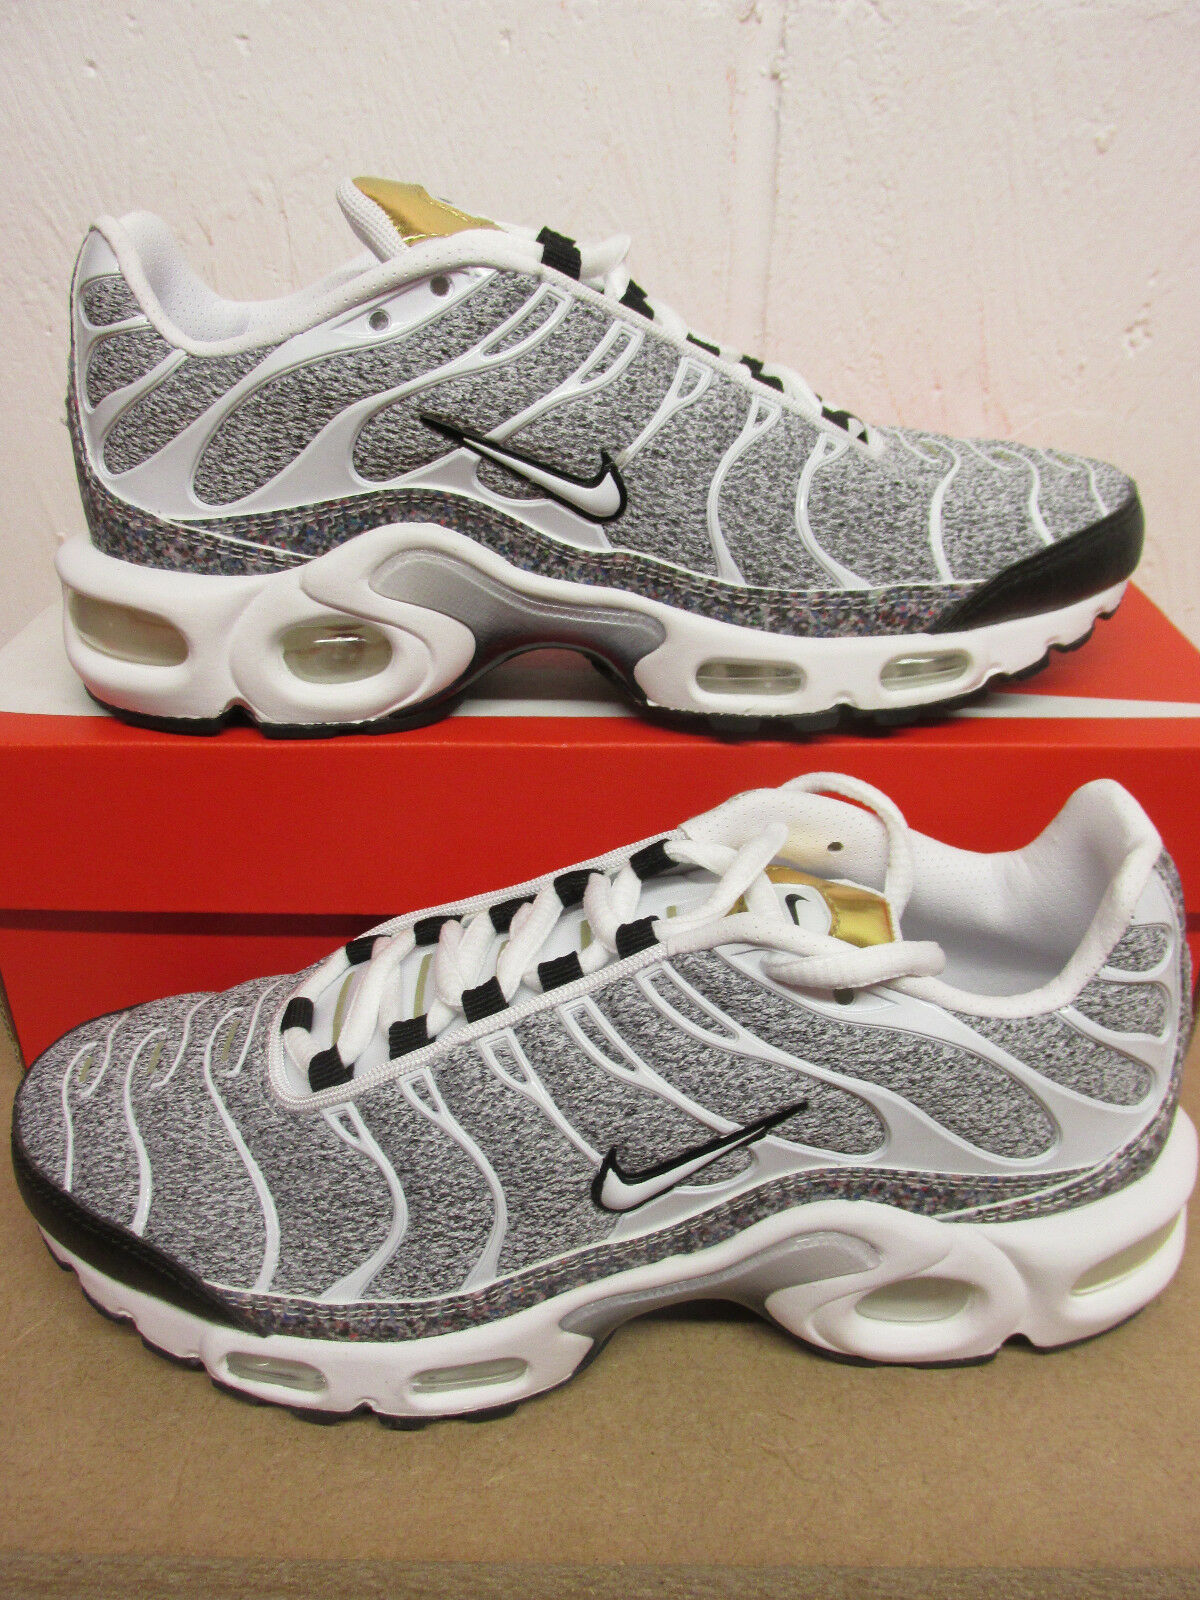 Nike Womens Air Max Plus SE Womens Running Trainers 862201 100 Sneakers Shoes